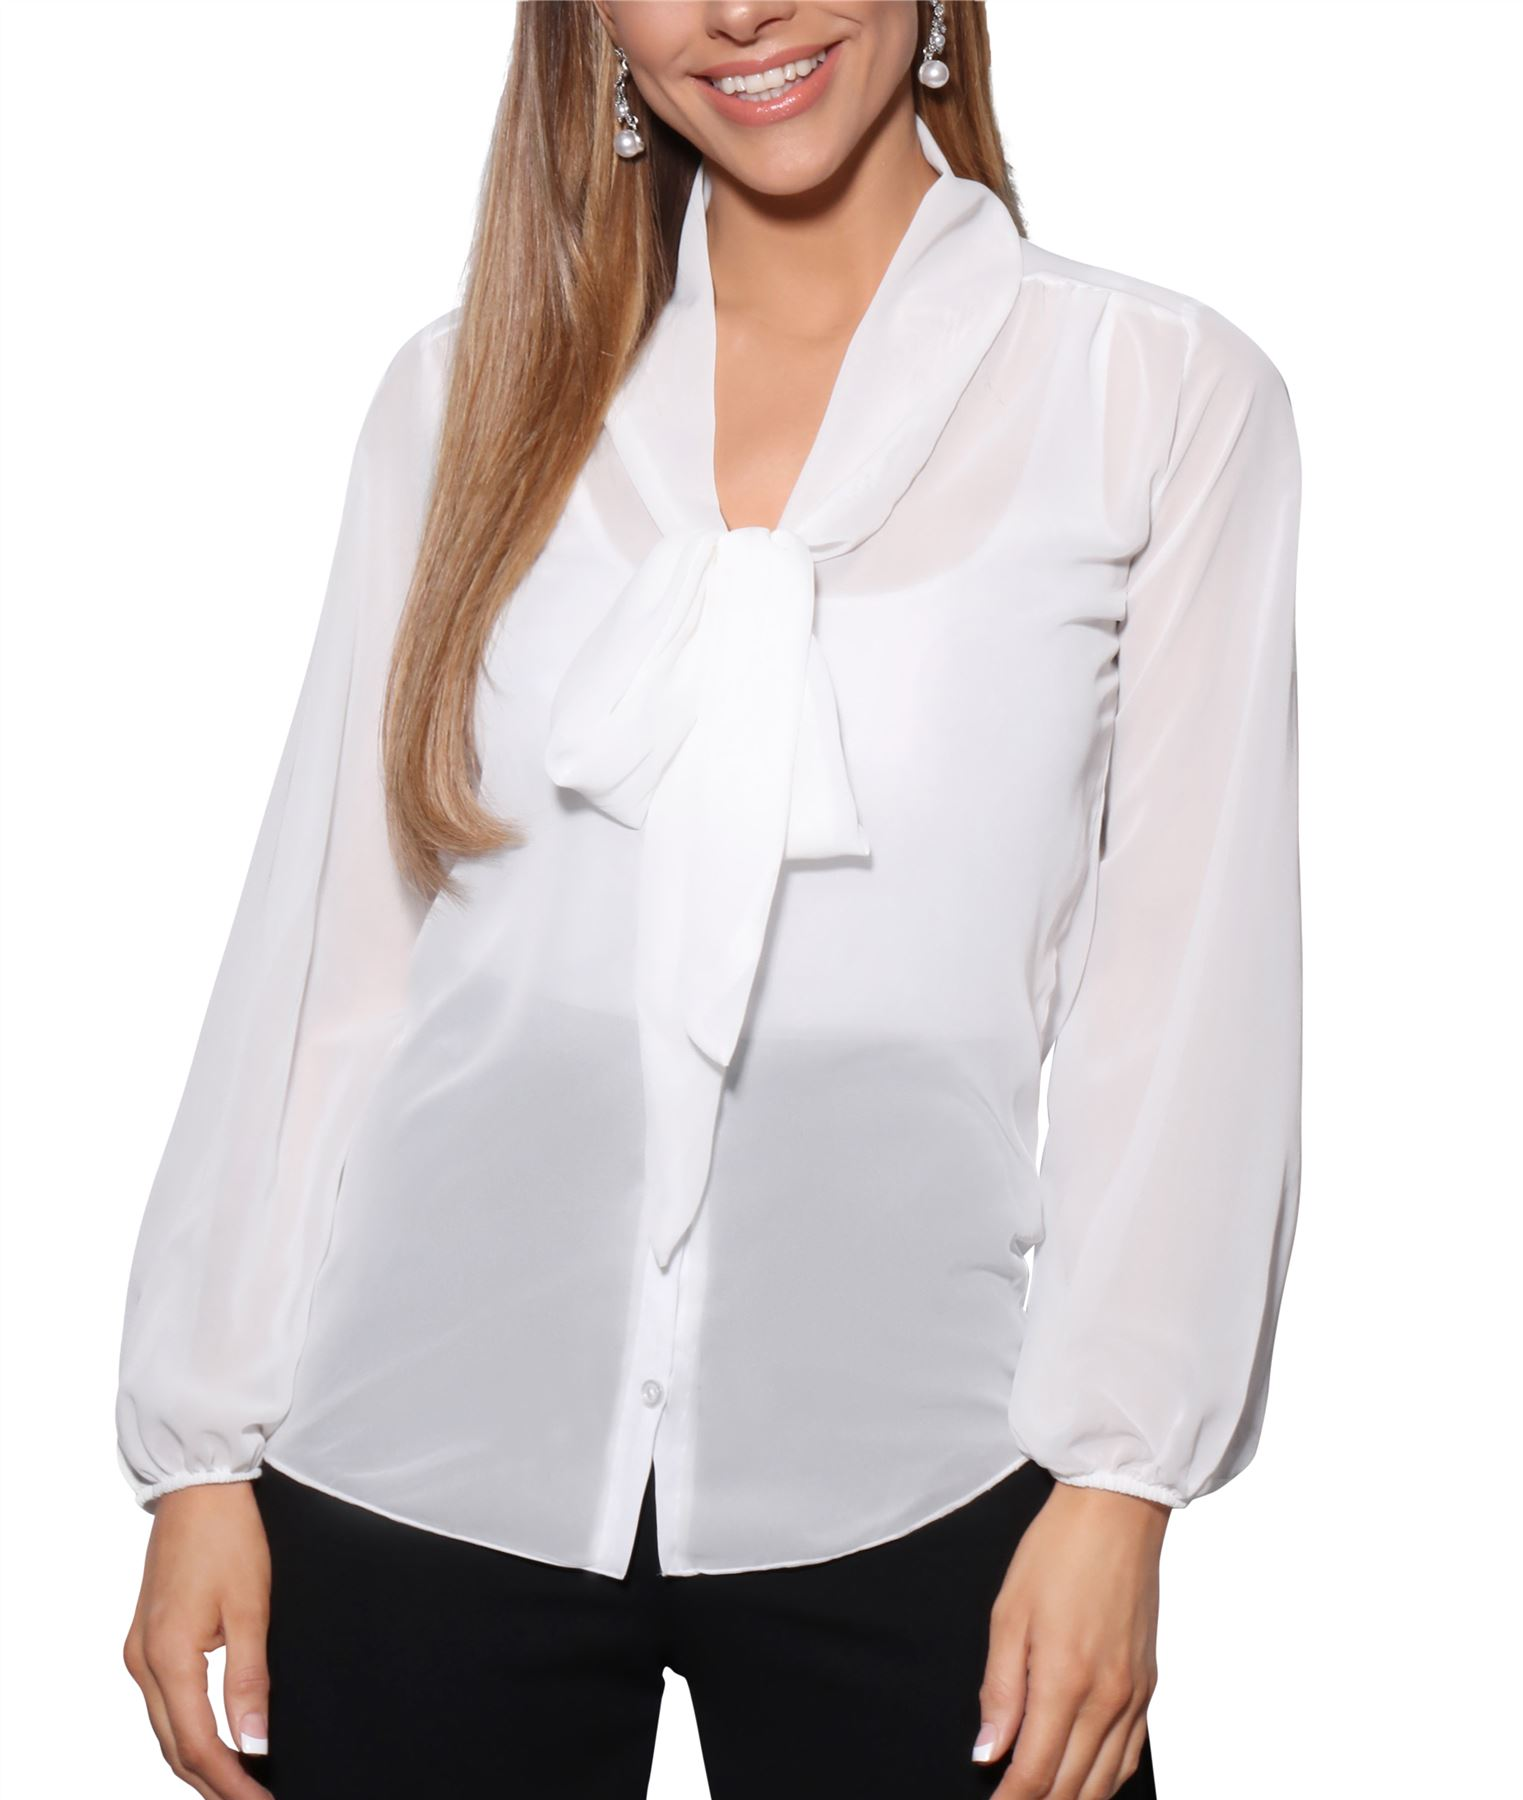 Womens-Ladies-Chiffon-Blouse-Long-Sleeve-Pussy-Bow-Top-Plain-Shirt-Office-Party thumbnail 8